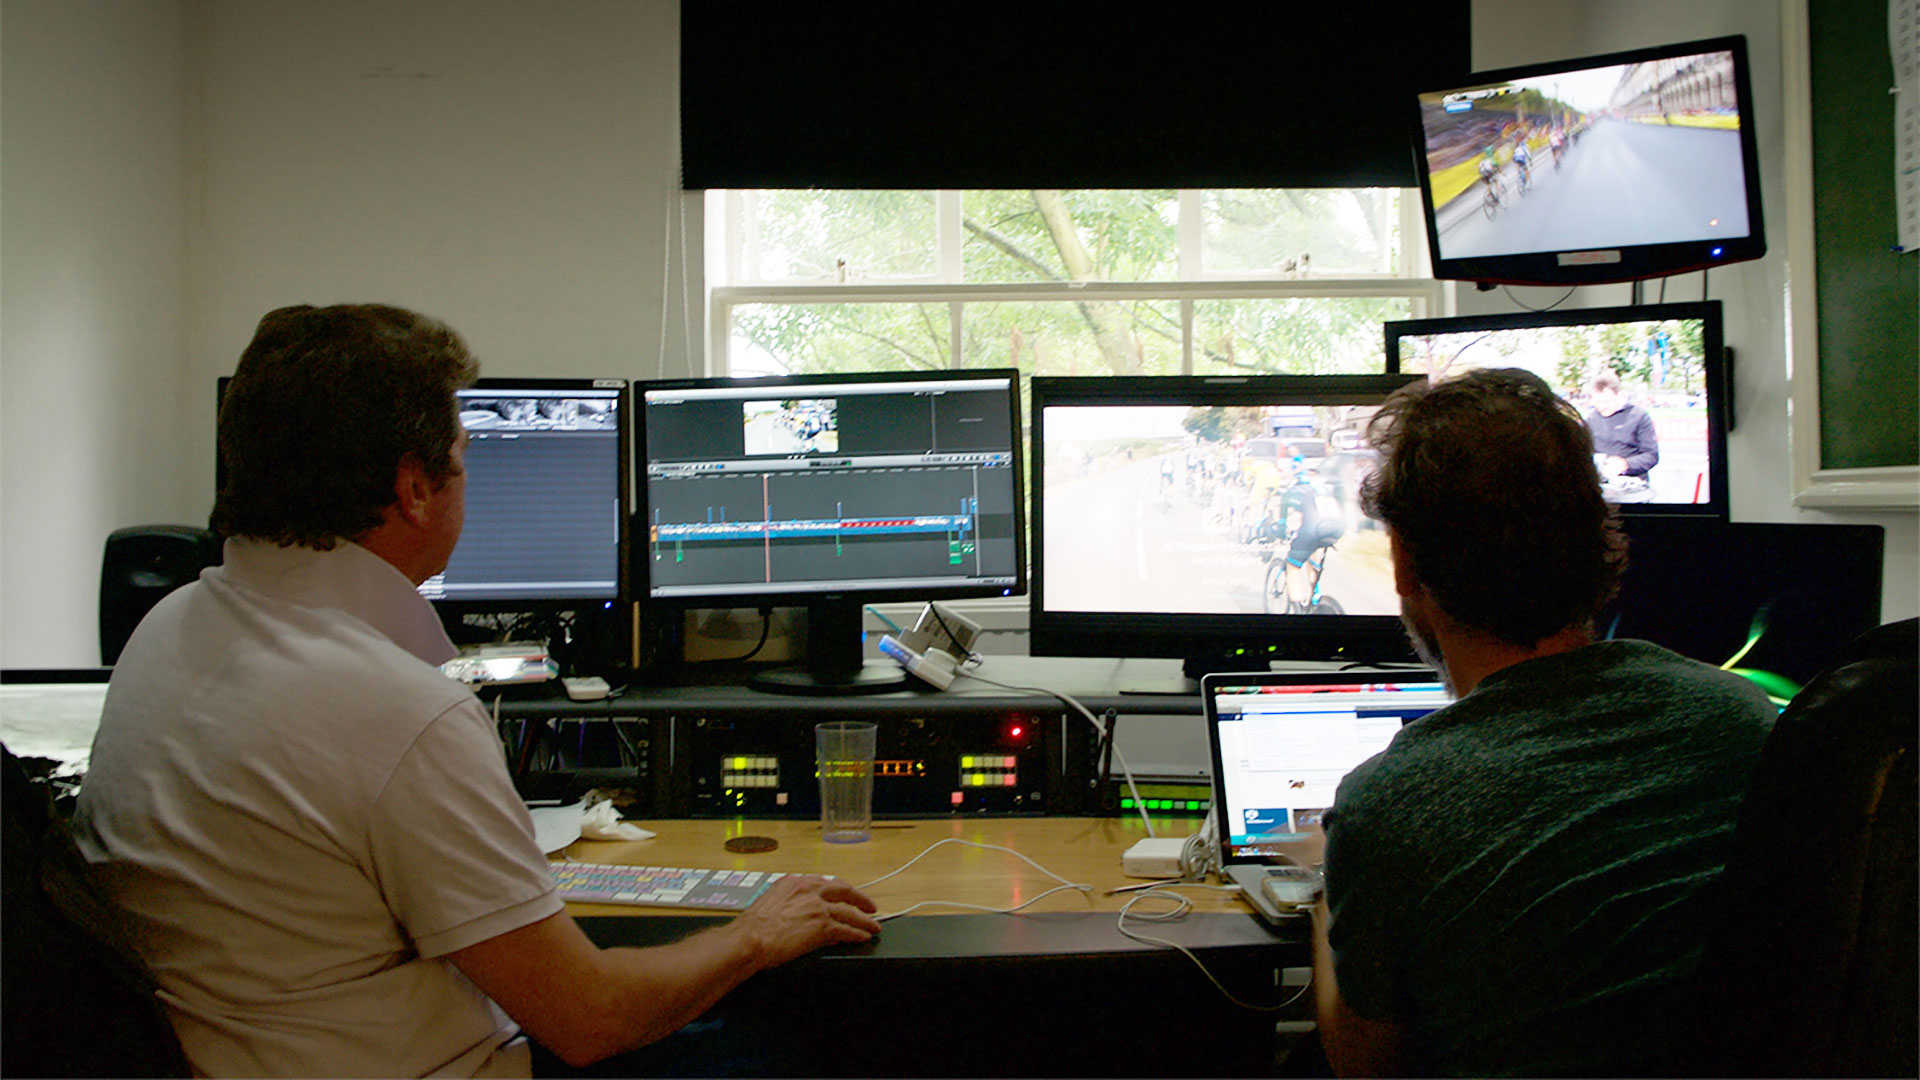 Recording Le Tour cycling moments using the Matrox Monarch HD streaming and recording appliance.